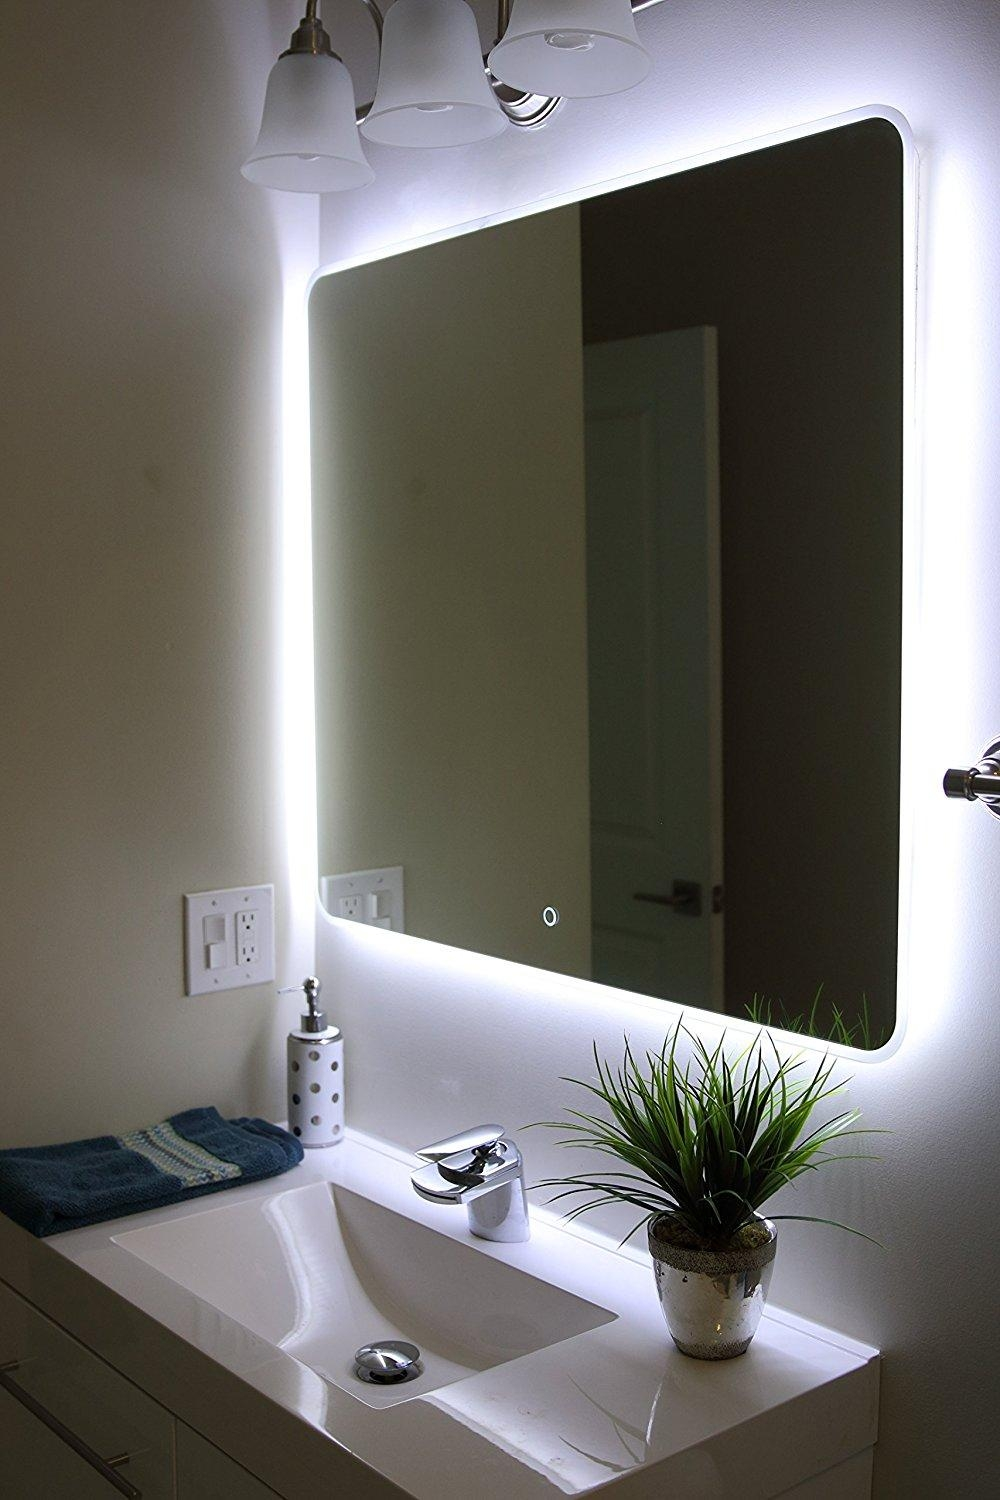 Bathroom : Lighted Bathroom Mirror 26 Shining Inspiration Light Up Pertaining To Lights For Bathroom Mirrors (Image 3 of 20)